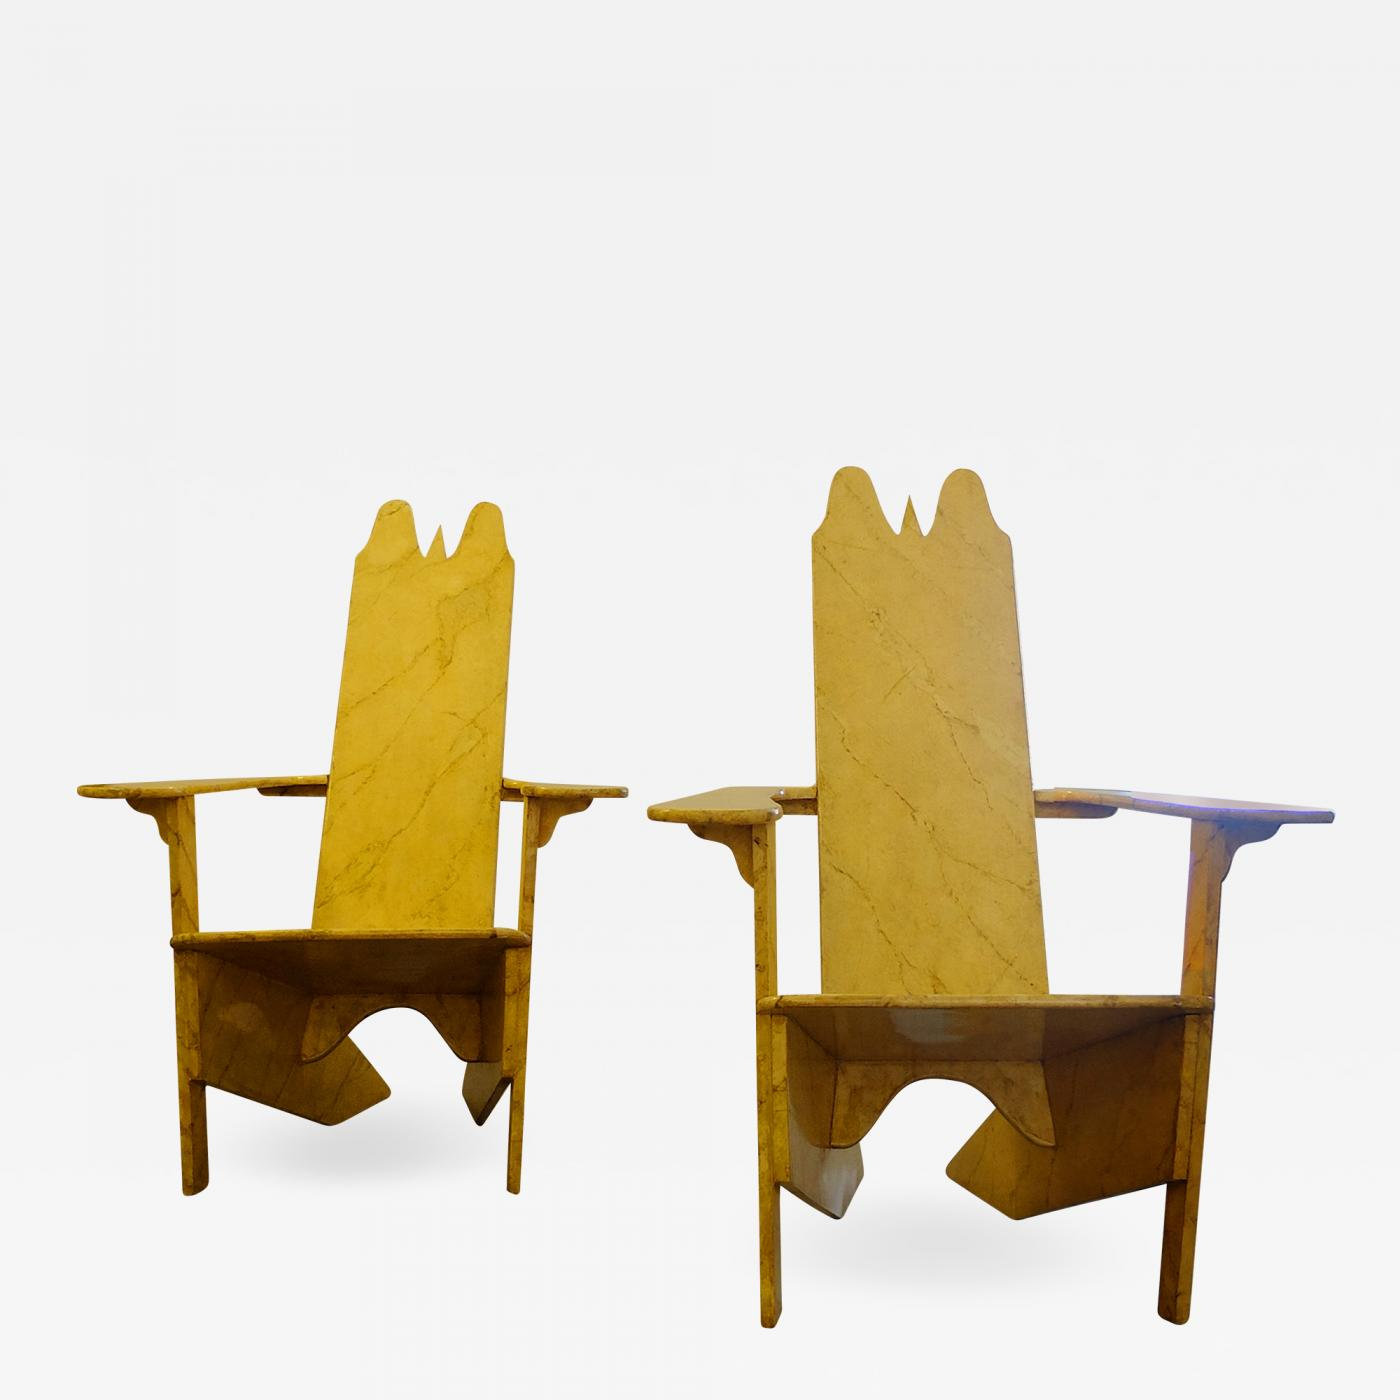 Pair of Gino Levi Montalcini Italian Modernist Wooden Lounge Chairs from 1927 & Pair of Gino Levi Montalcini Italian Modernist Wooden Loung...